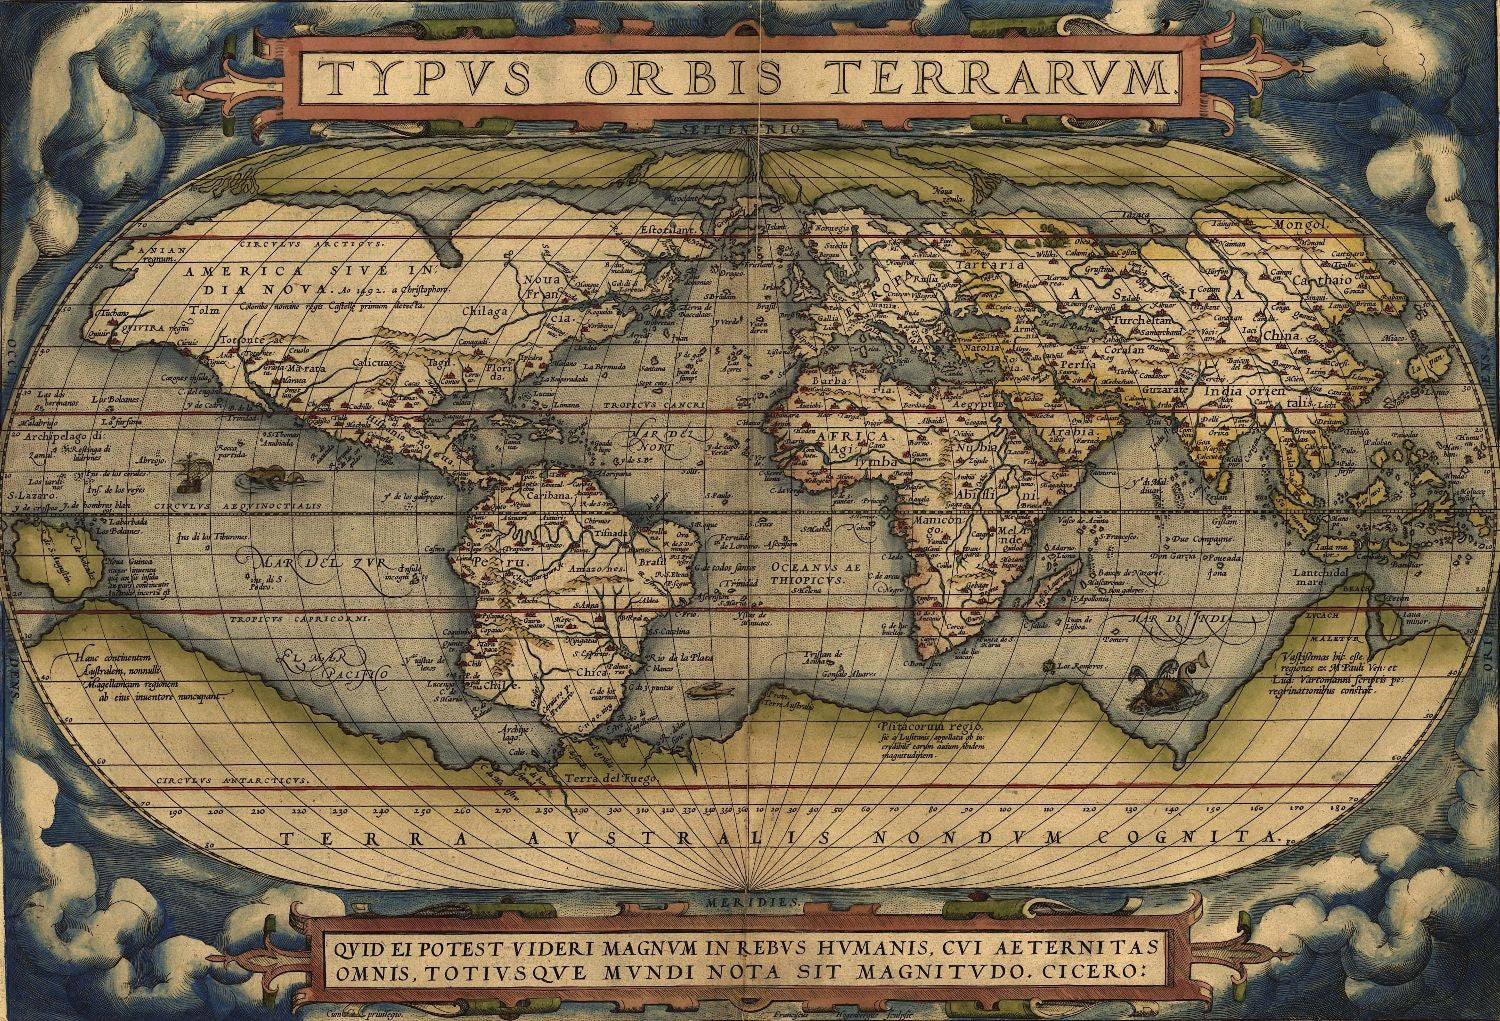 Decorative vintage world map typus orbis terrarum abraham decorative vintage world map typus orbis terrarum abraham ortelius 1570 large art gumiabroncs Image collections